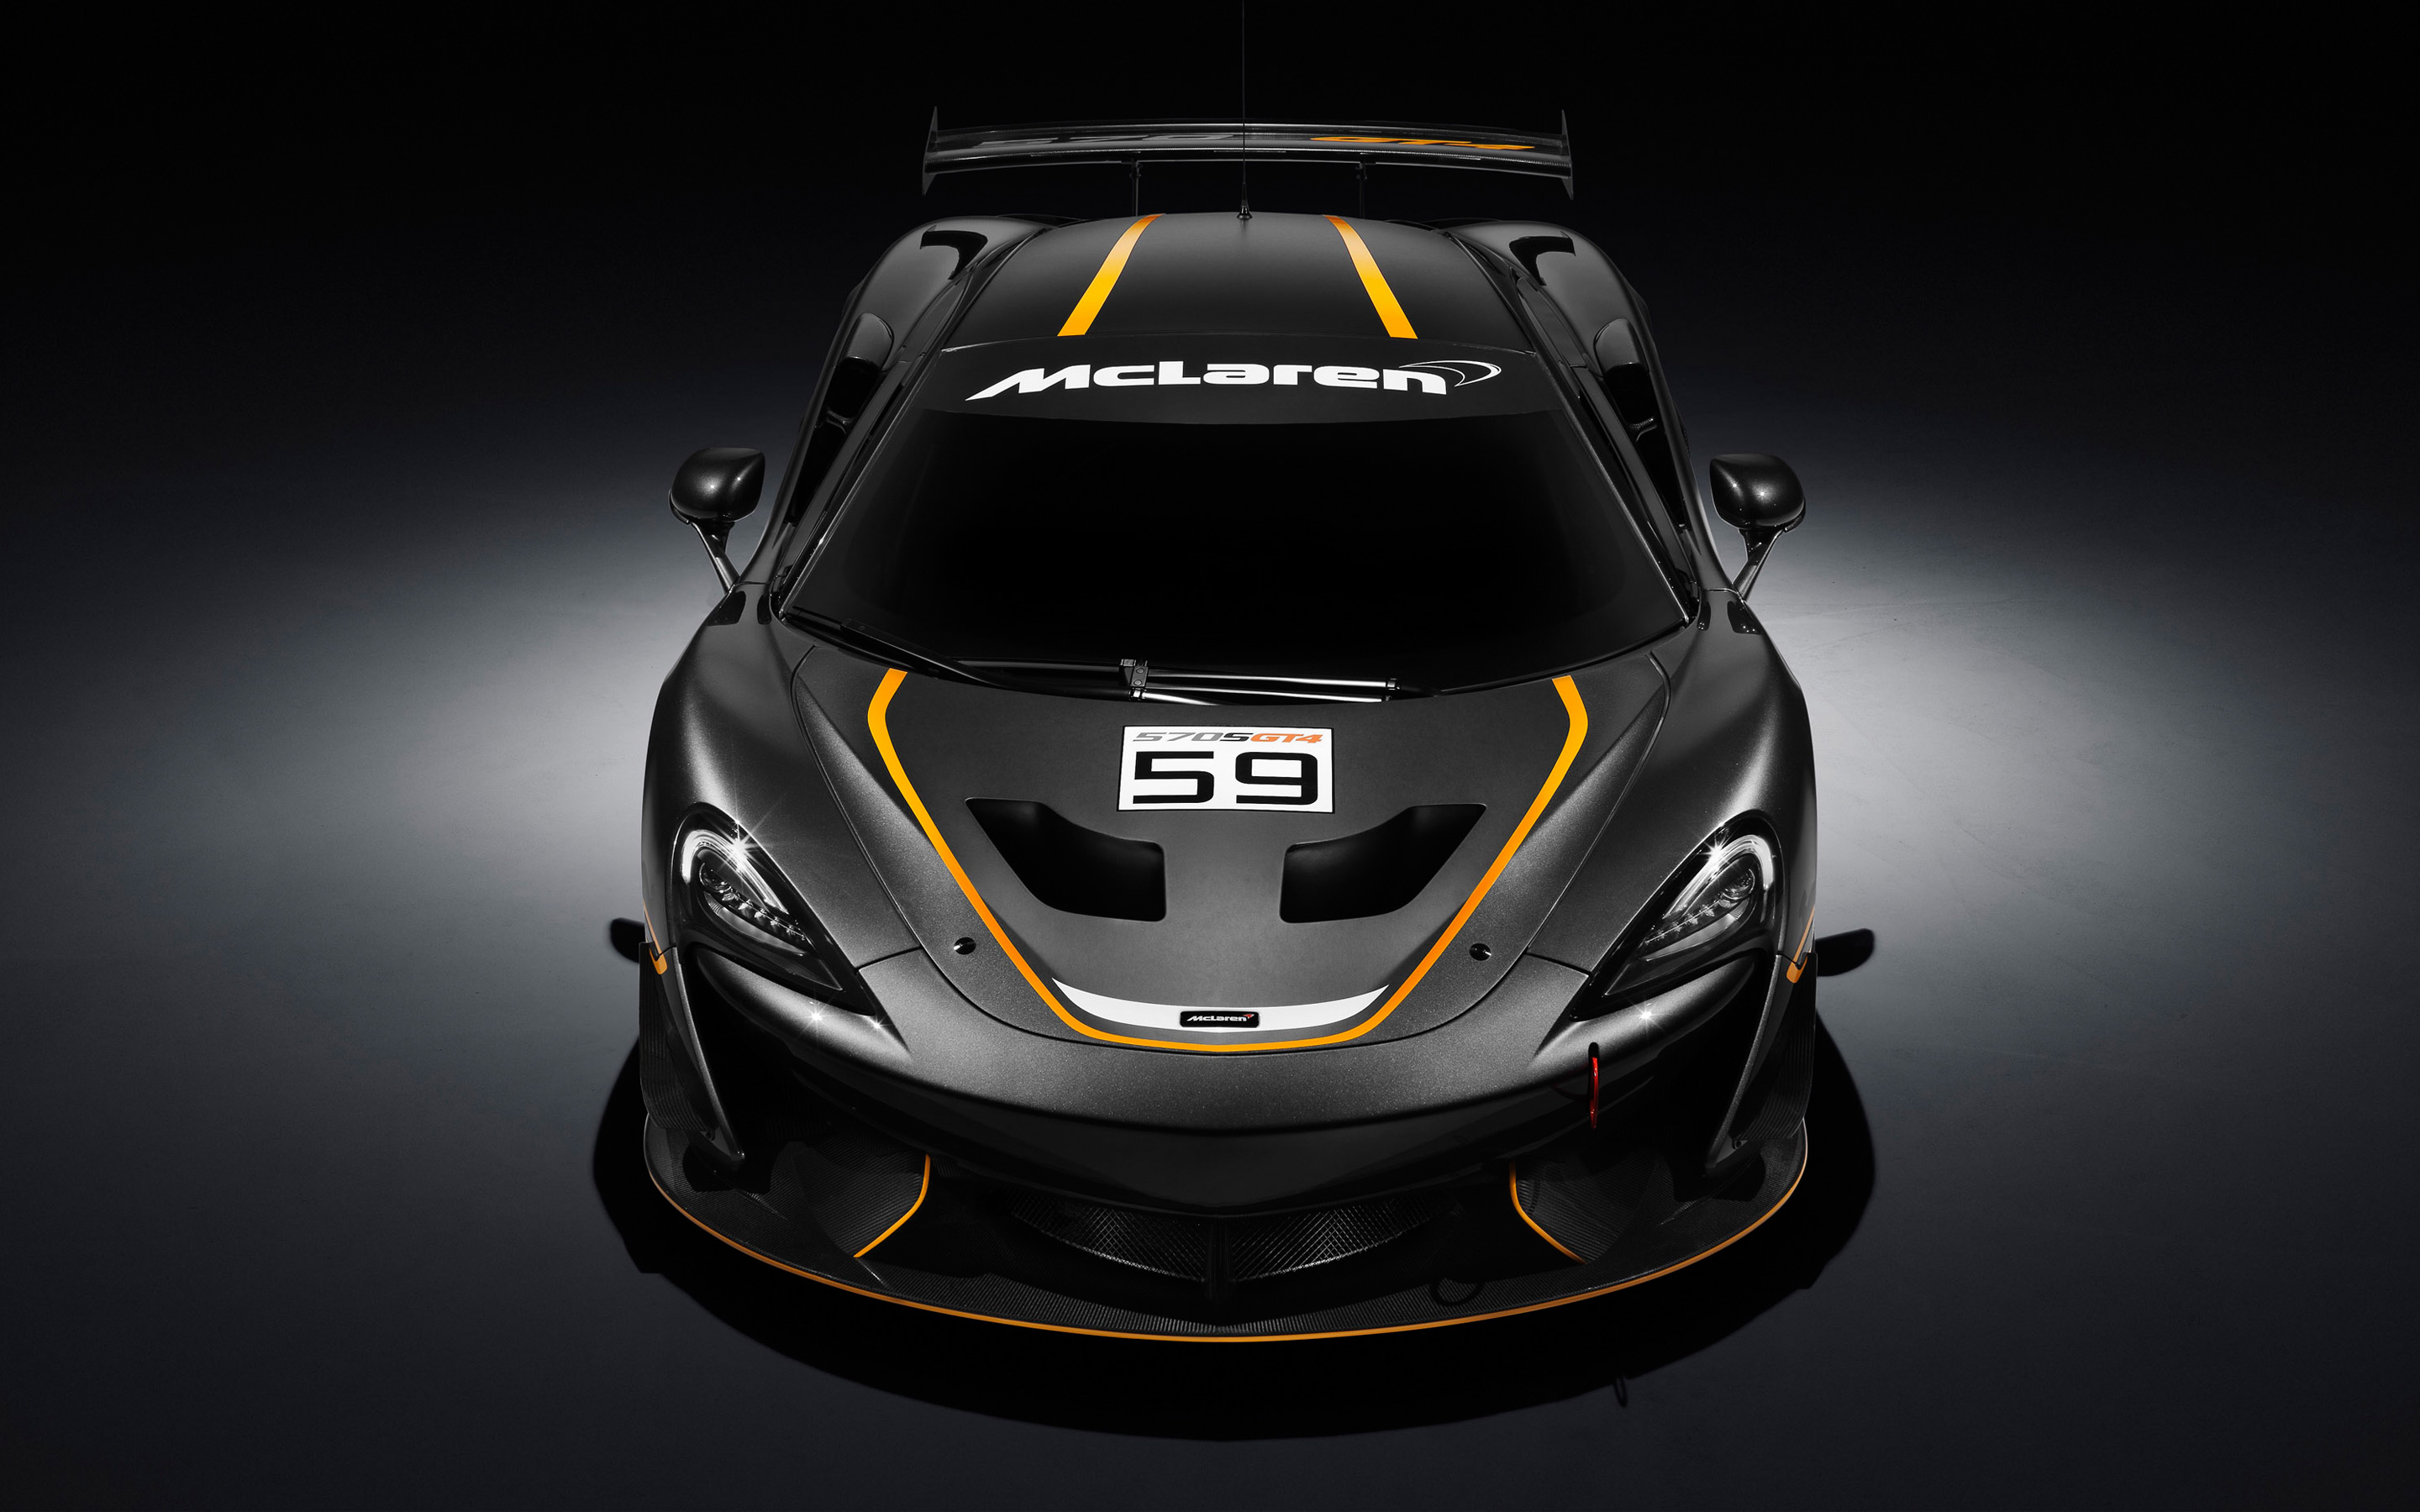 2880x1800 - McLaren 570S GT4 Wallpapers 1